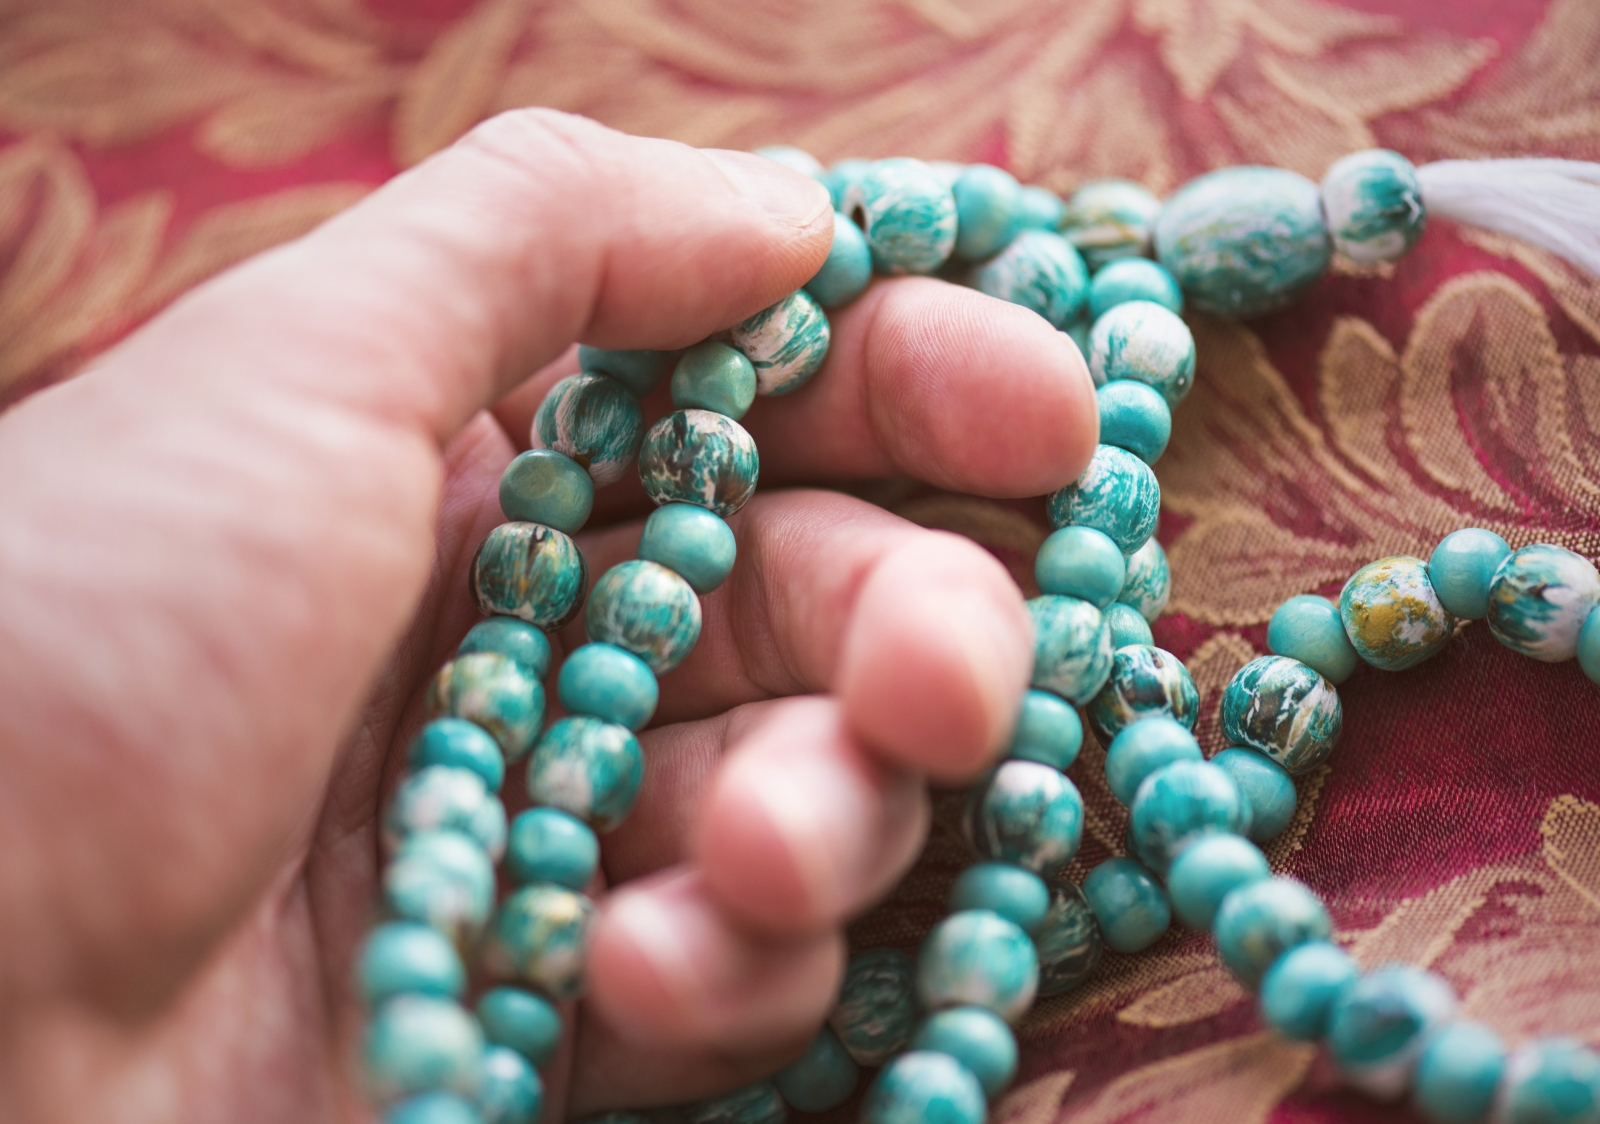 A man holding a turquoise male necklace. Photo by Savvapanf Photo (c) / Fotolia.